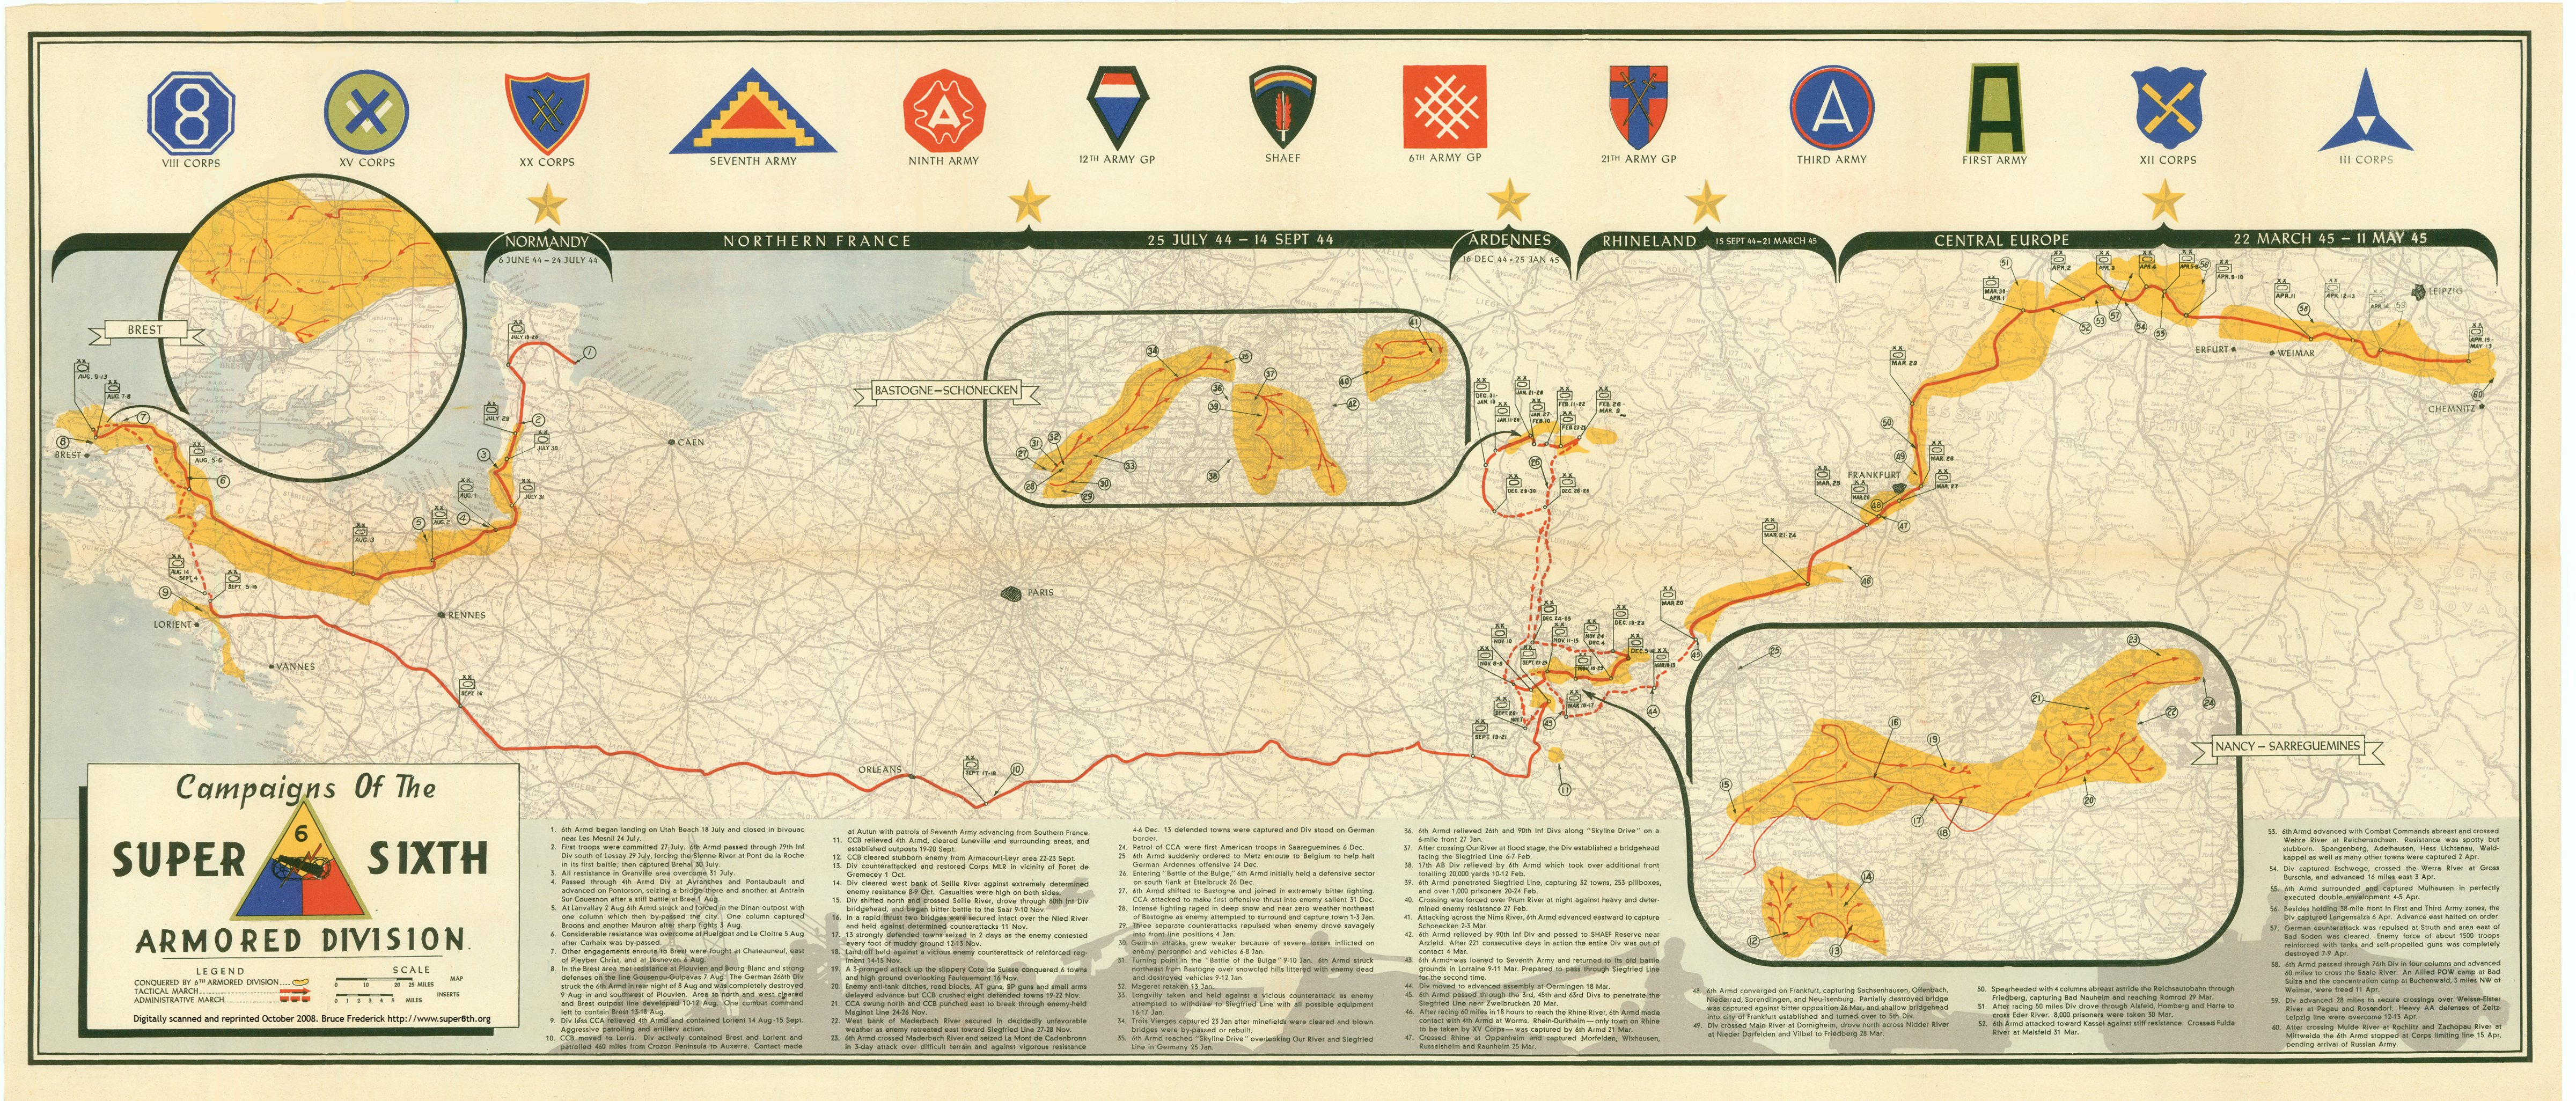 6th Armored Division Campaign Map on